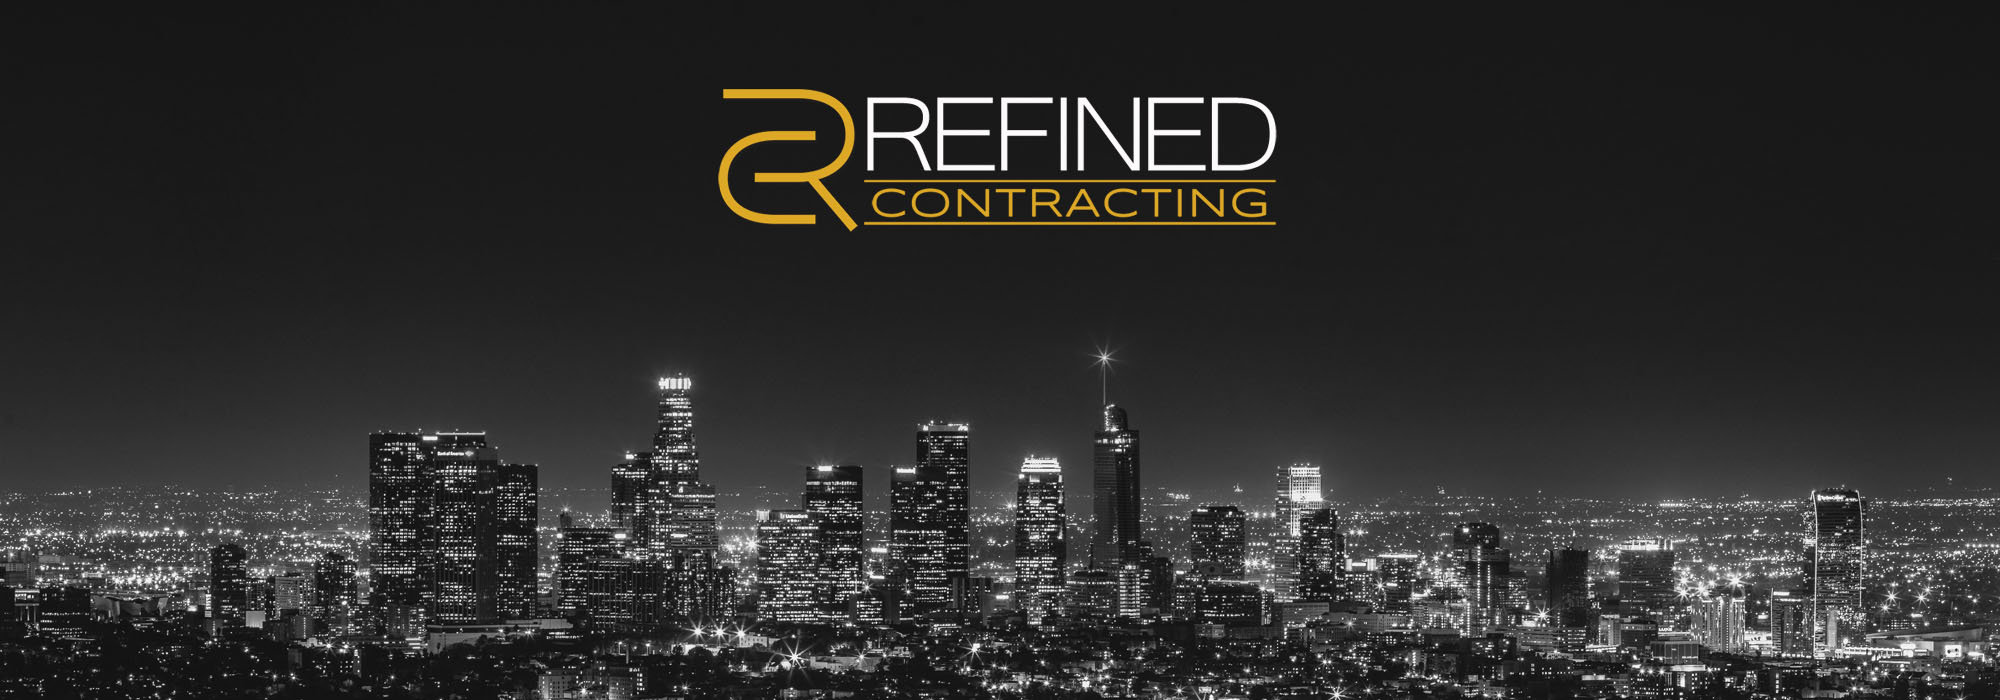 Refined Contracting (formerly Jovanovich Contracting) serves homeowners construction needs in Minnesota and Colorado